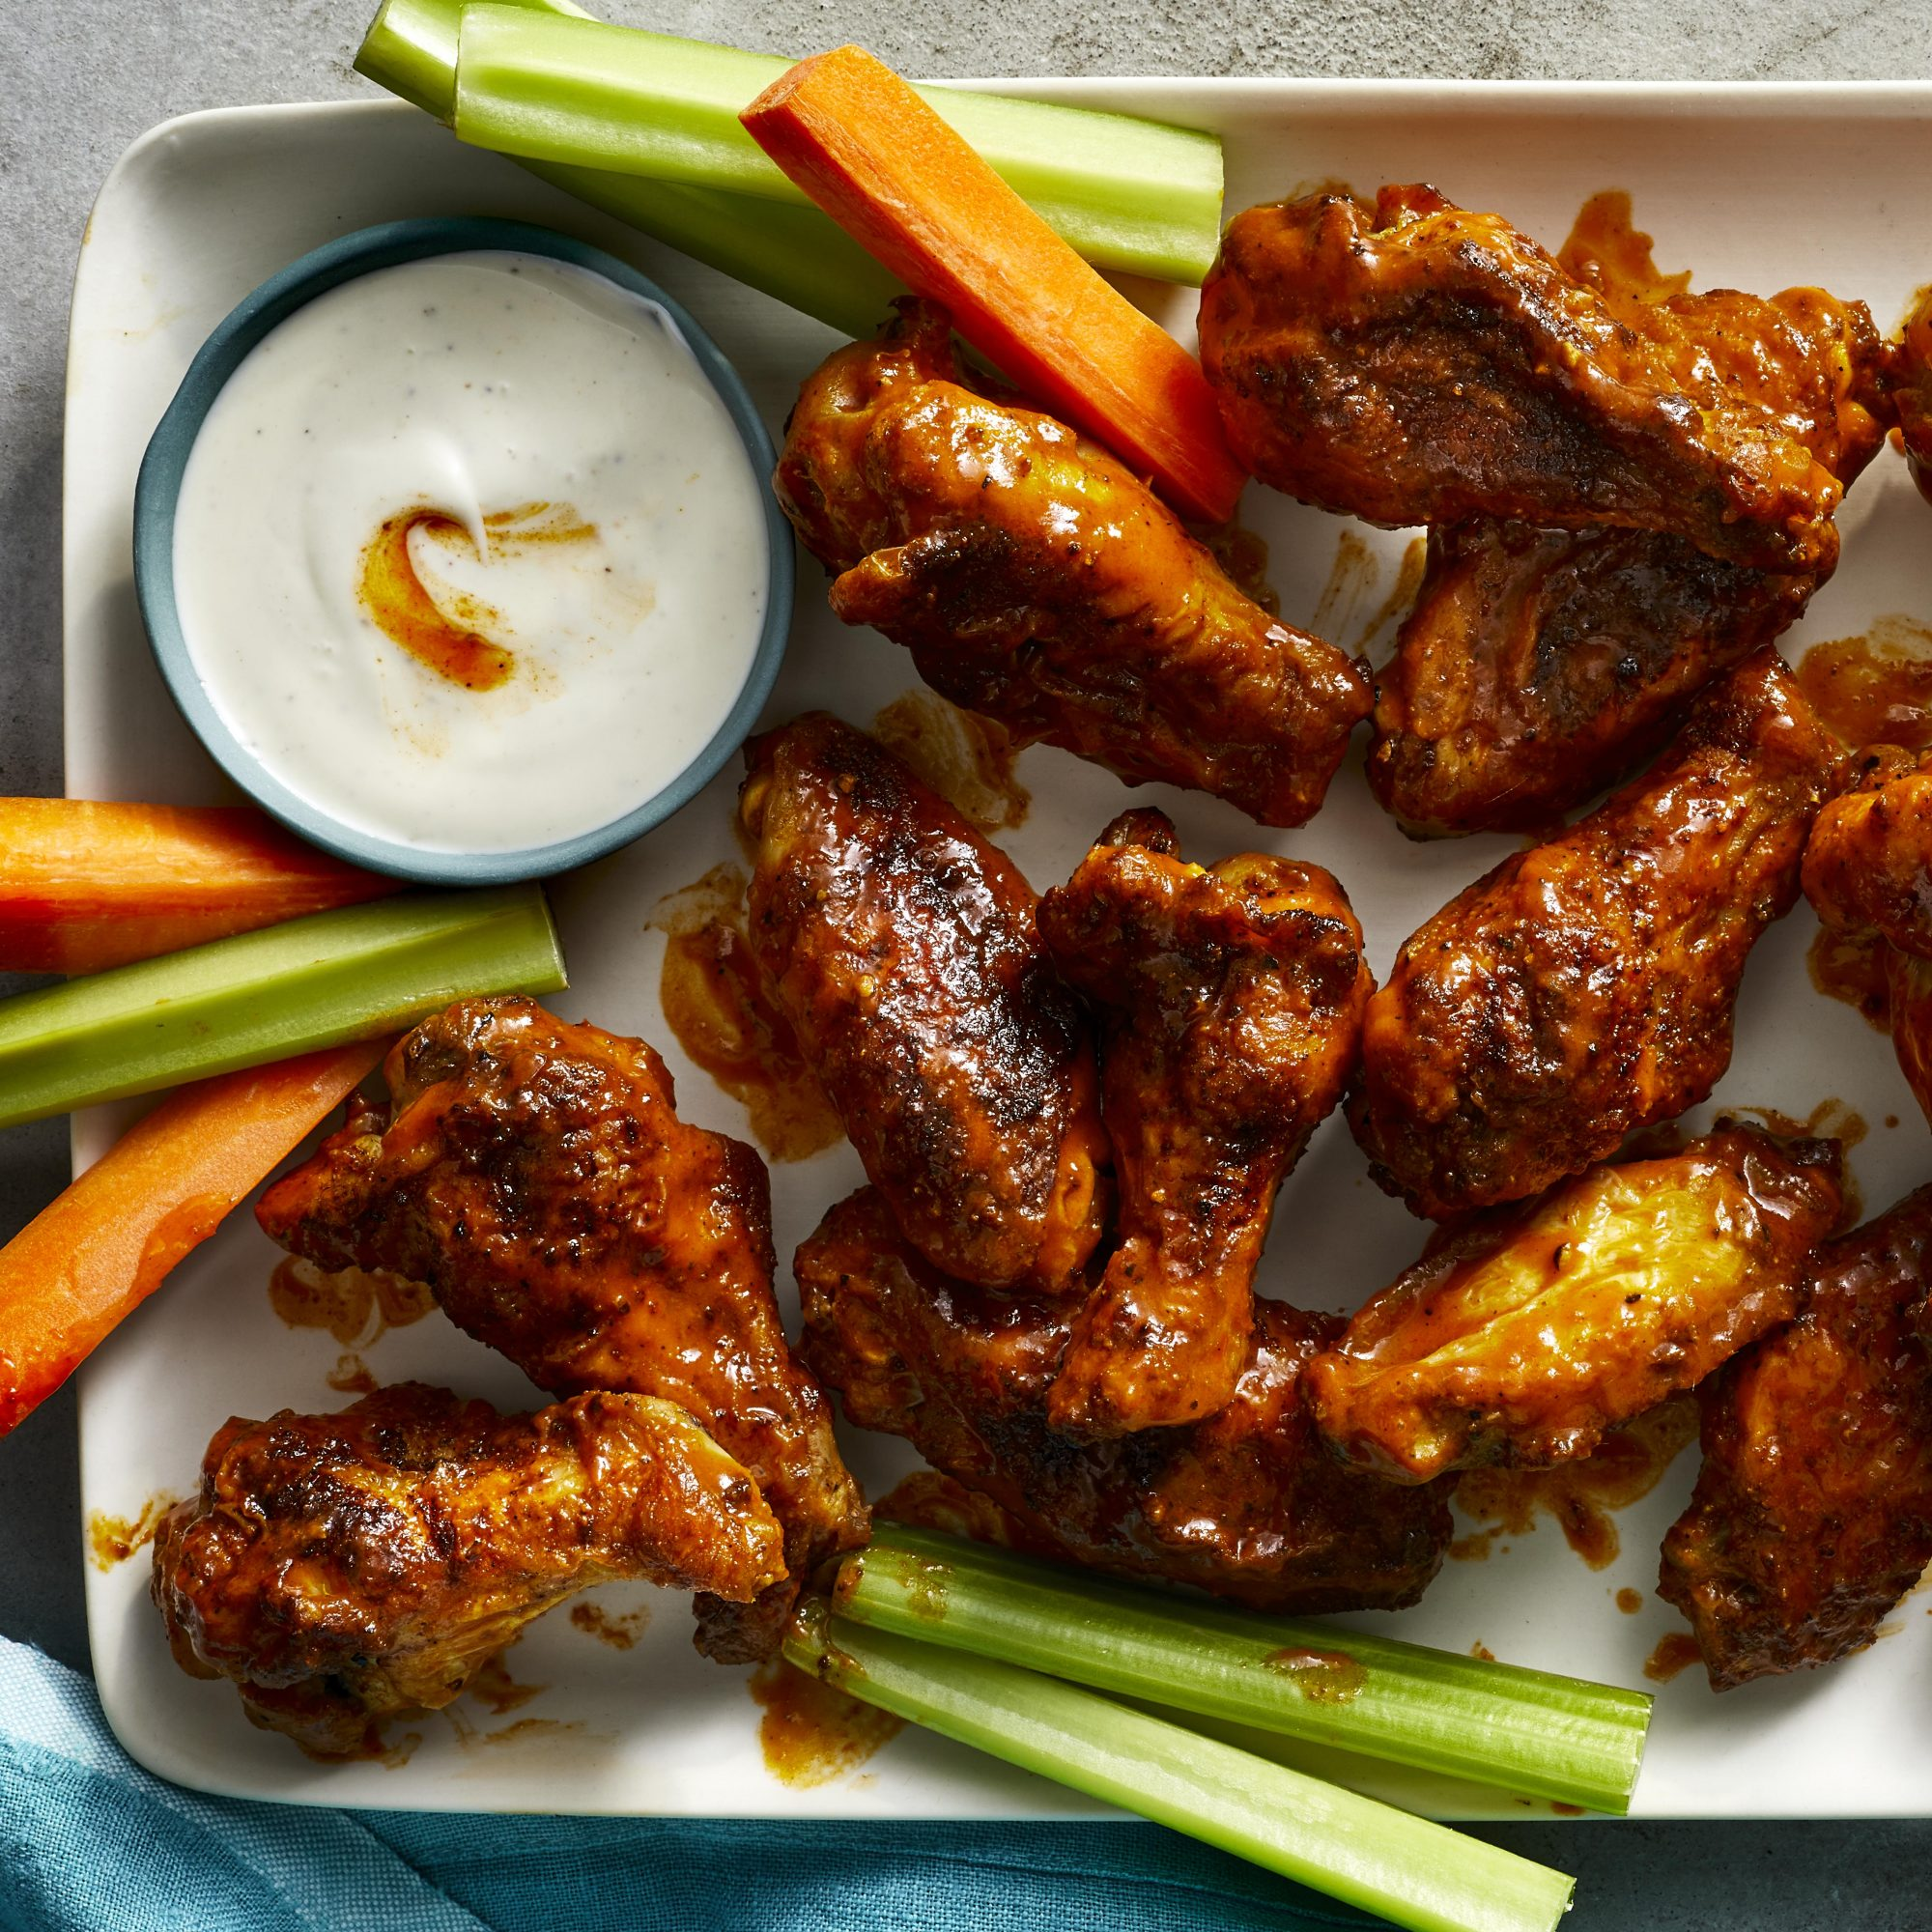 These 15 Classic Super Bowl Party Appetizers Are Sure to Score